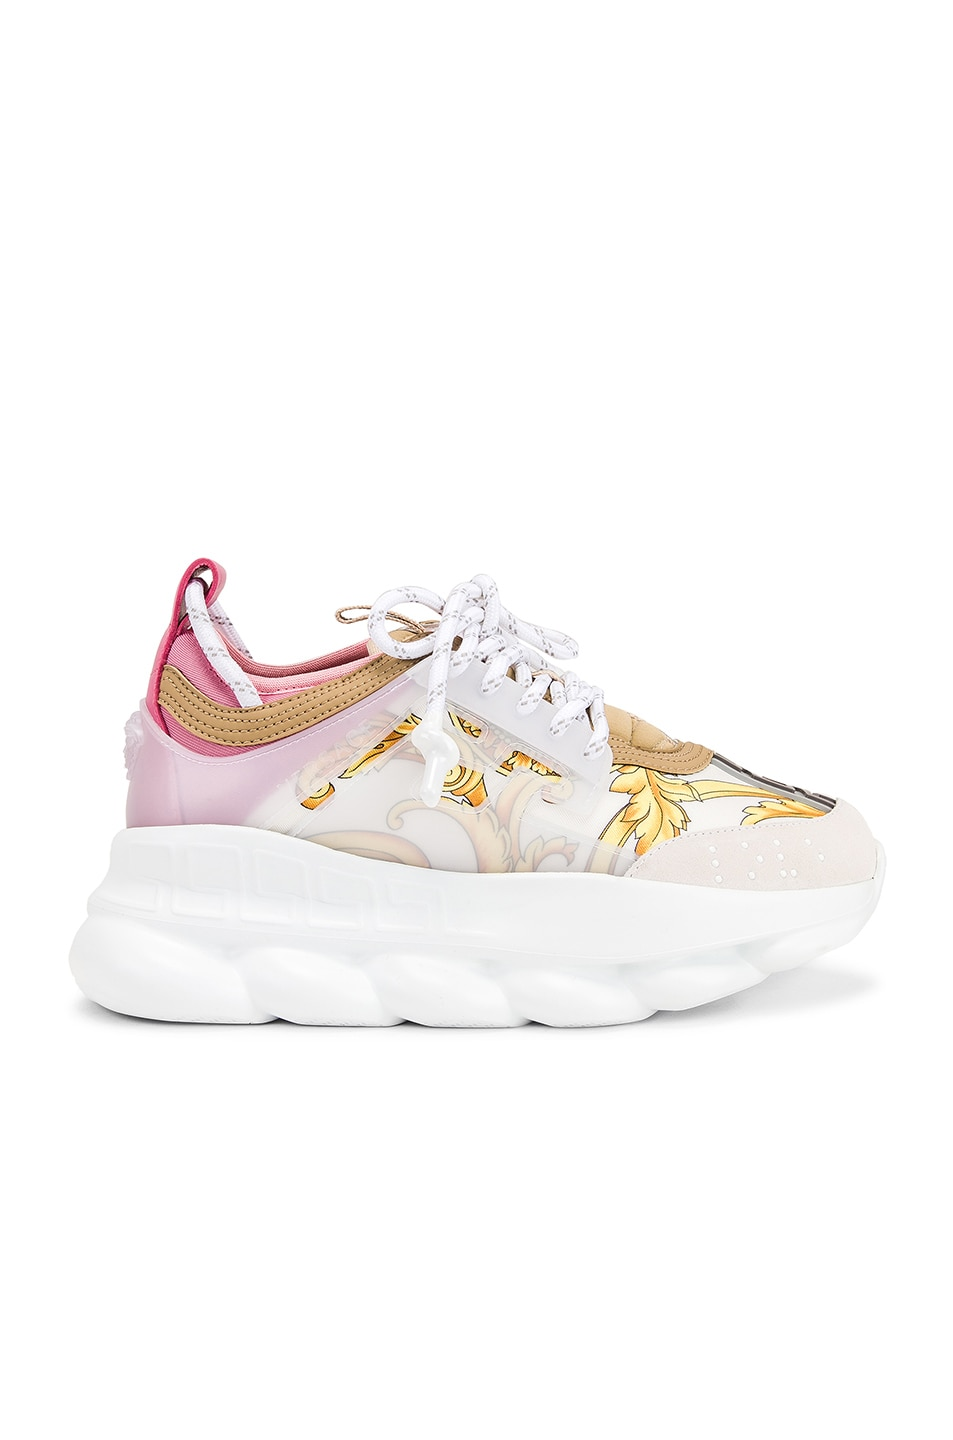 Image 1 of VERSACE Chain Reaction Sneakers in Hibiscus White Multi